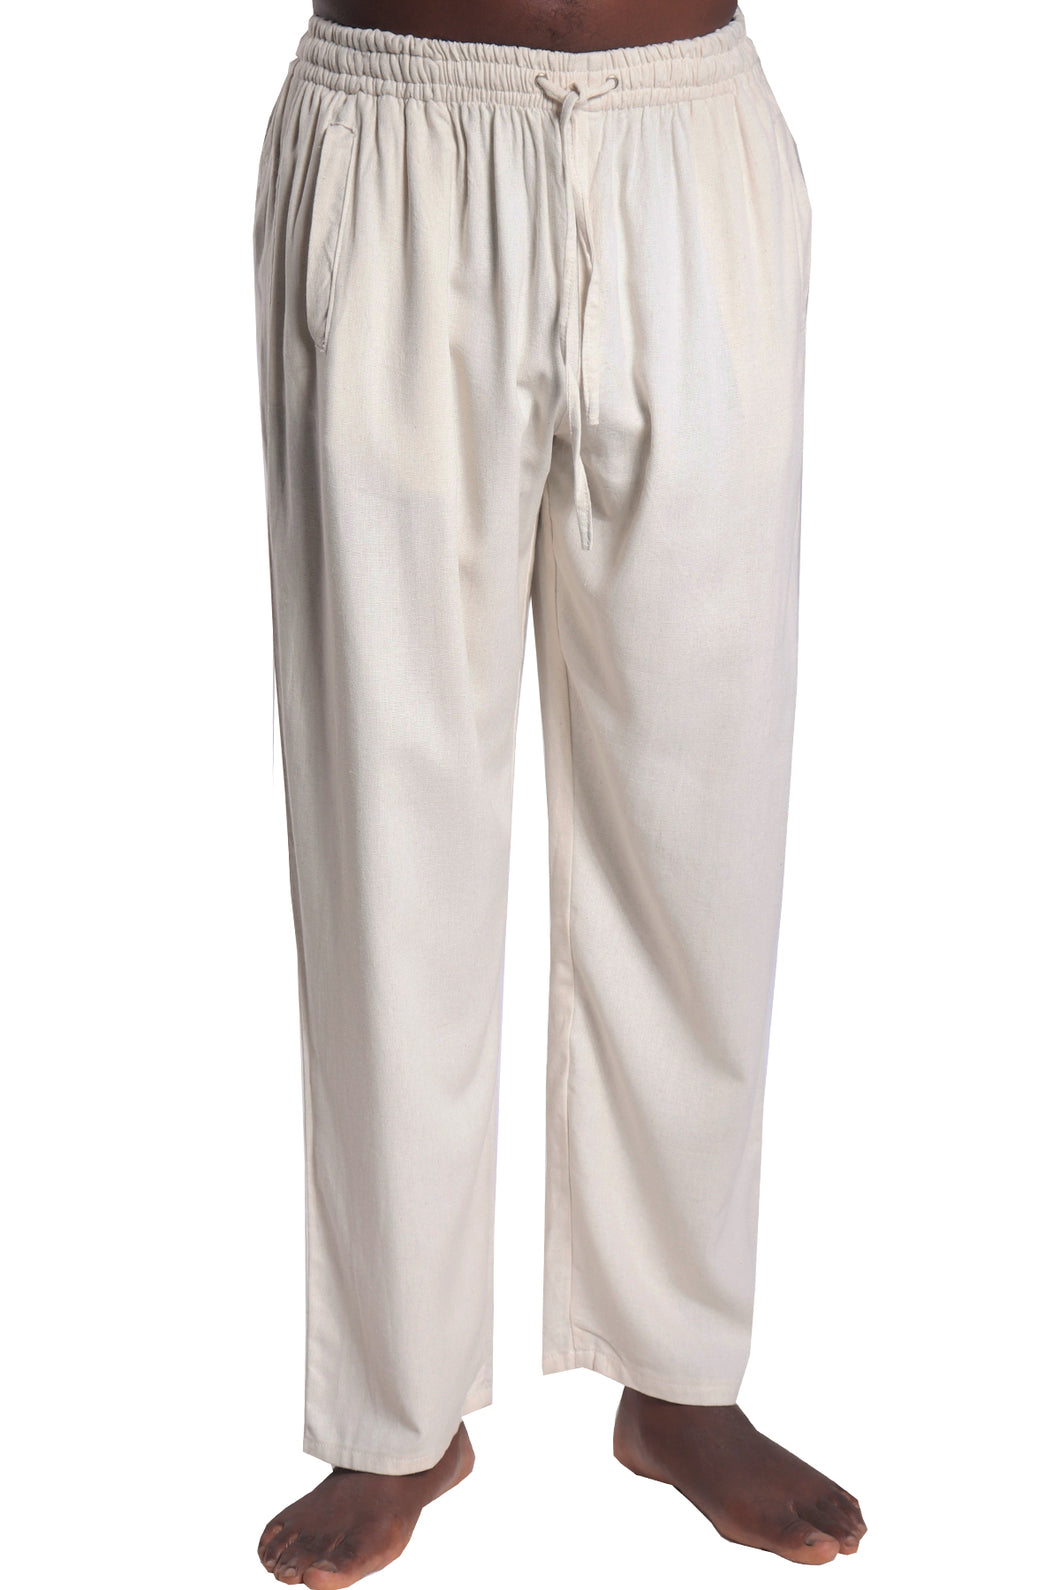 Piha Long Pants/Linen Rayon Natural